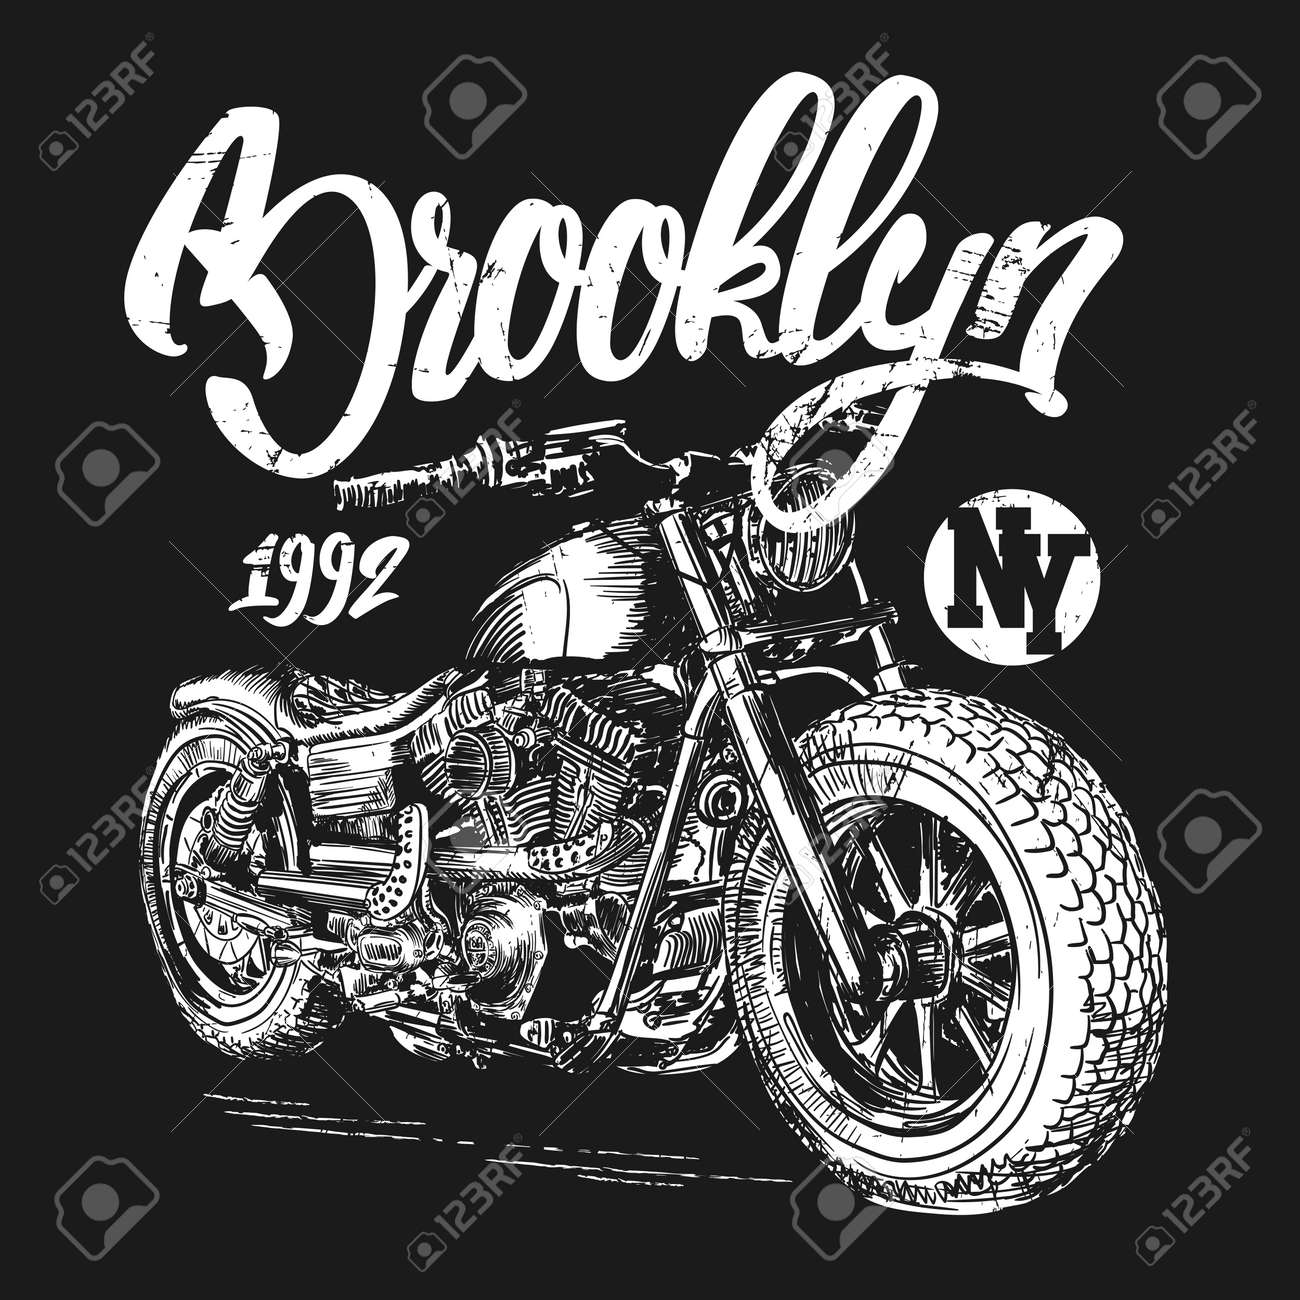 brooklyn motorcycle t-shirt graphic design - 61486079